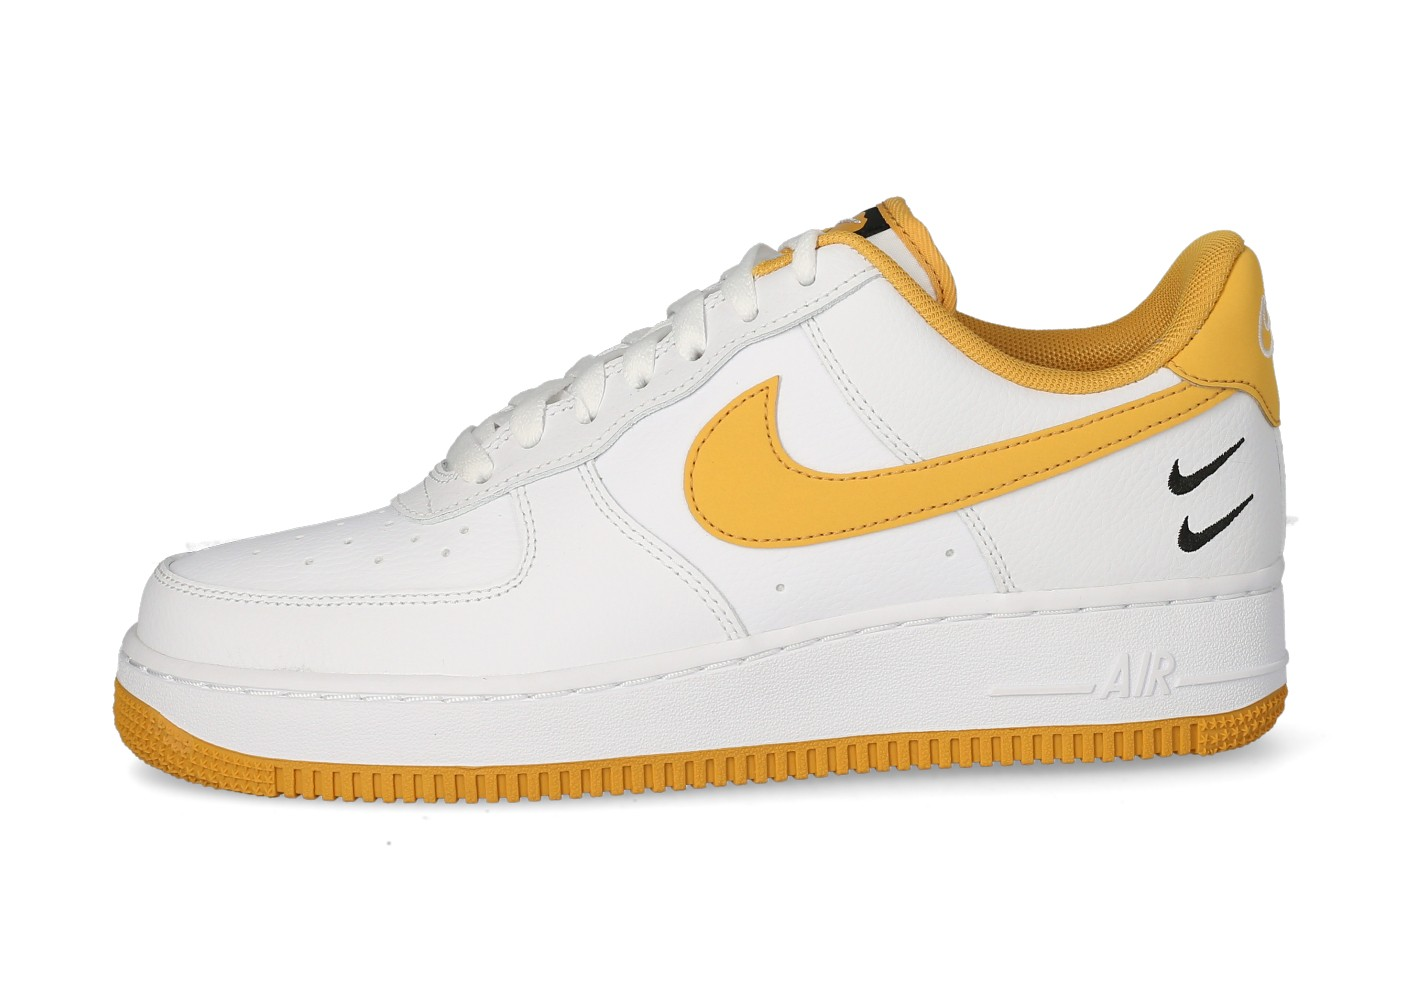 2021 Nike Air Force 1'07 Double Swoosh blanche et jaune ...